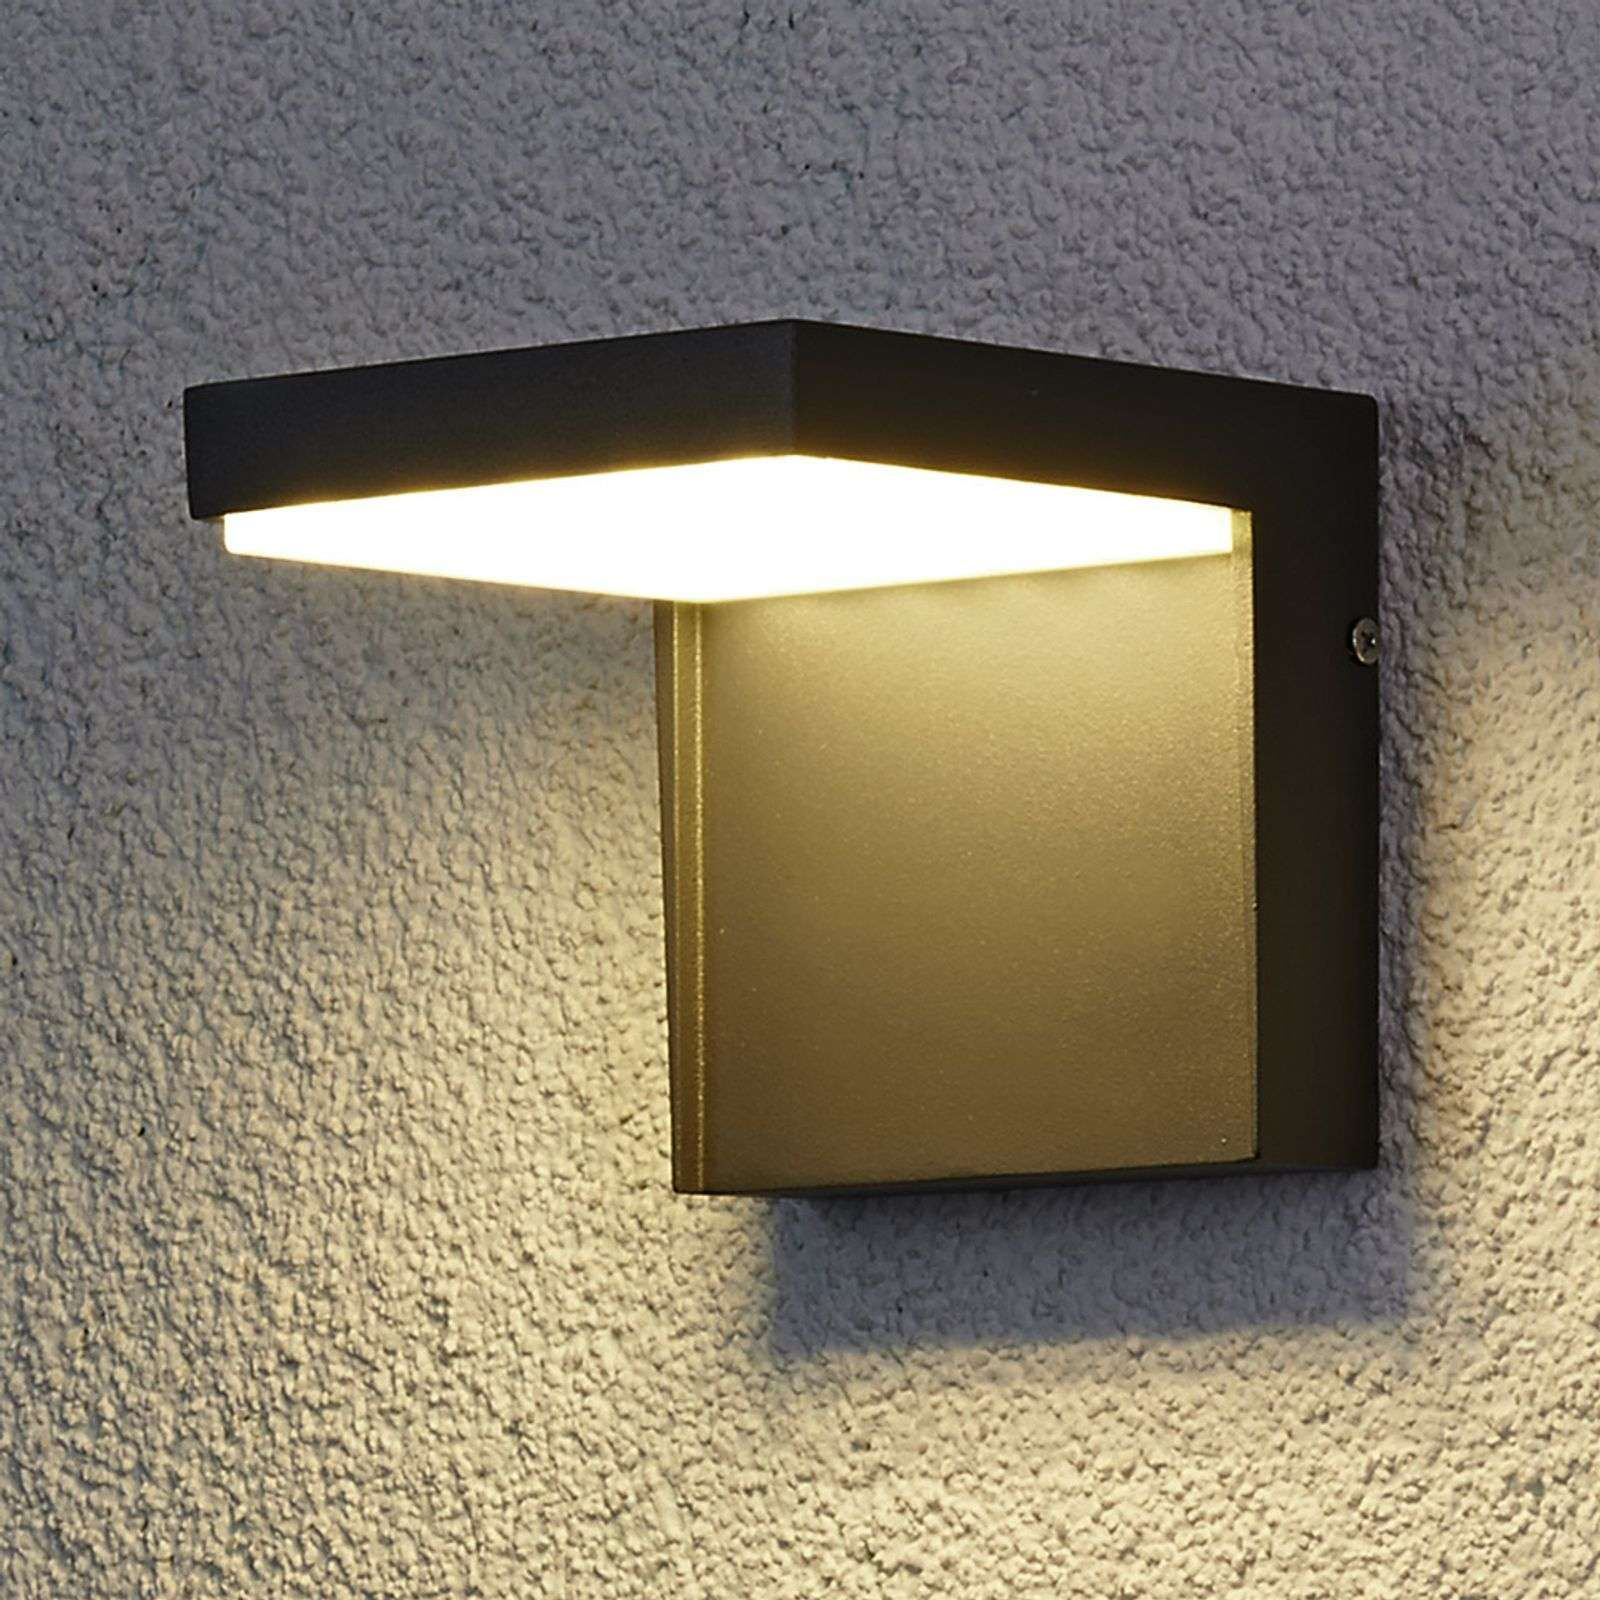 Modern Rachel Led Outdoor Wall Light Aluminium By Lucande In 2020 Outdoor Wall Lamps Modern Outdoor Wall Lighting Exterior Wall Light